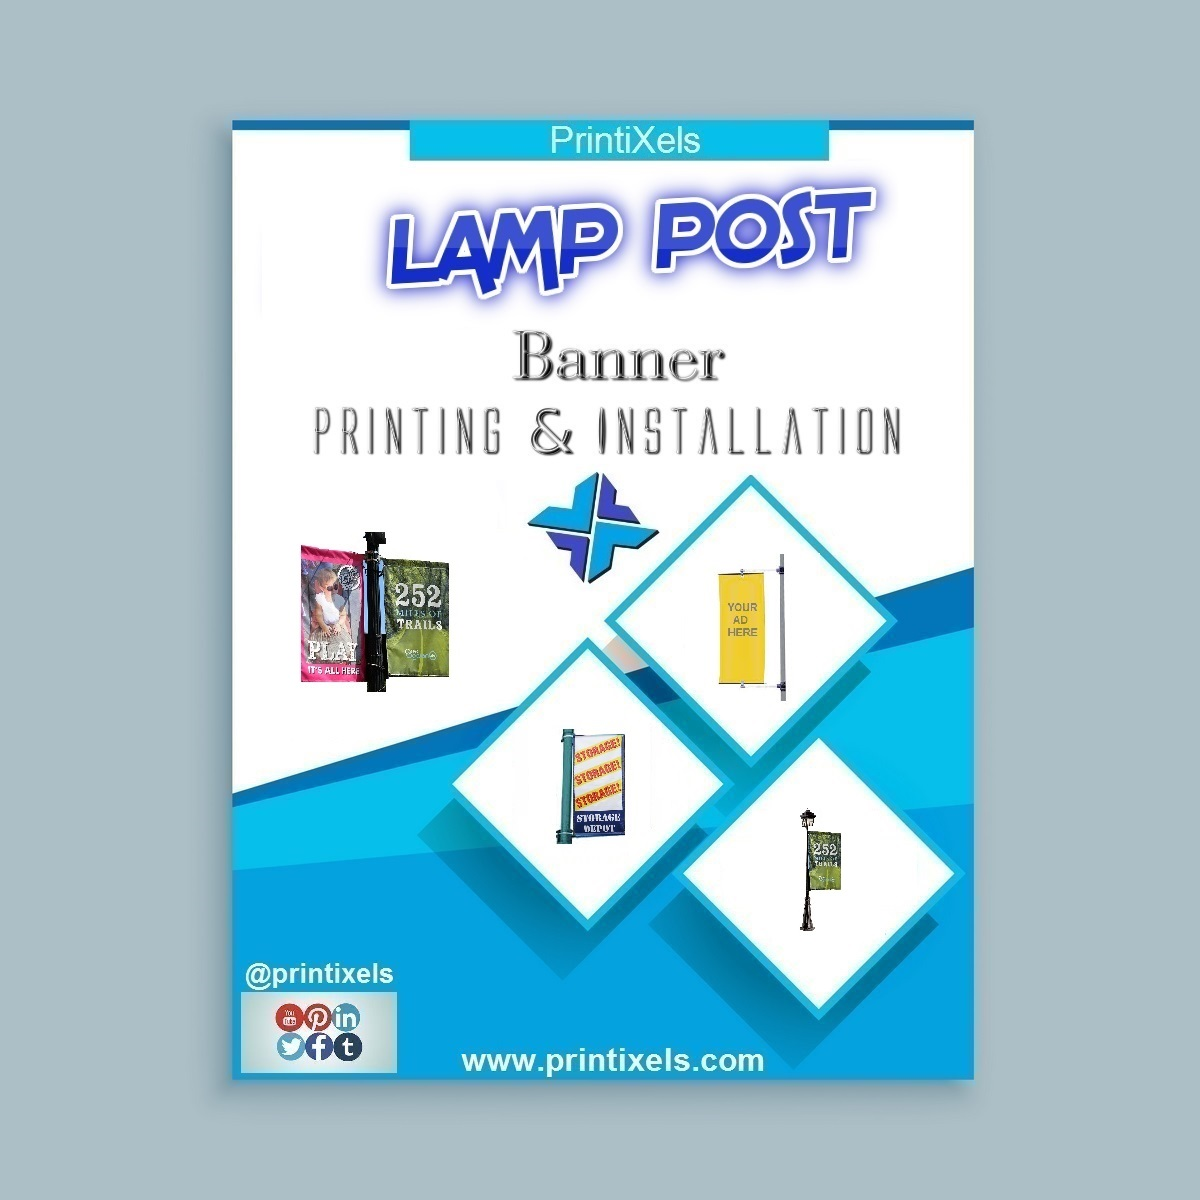 Lamp Post Banner Printing & Installation